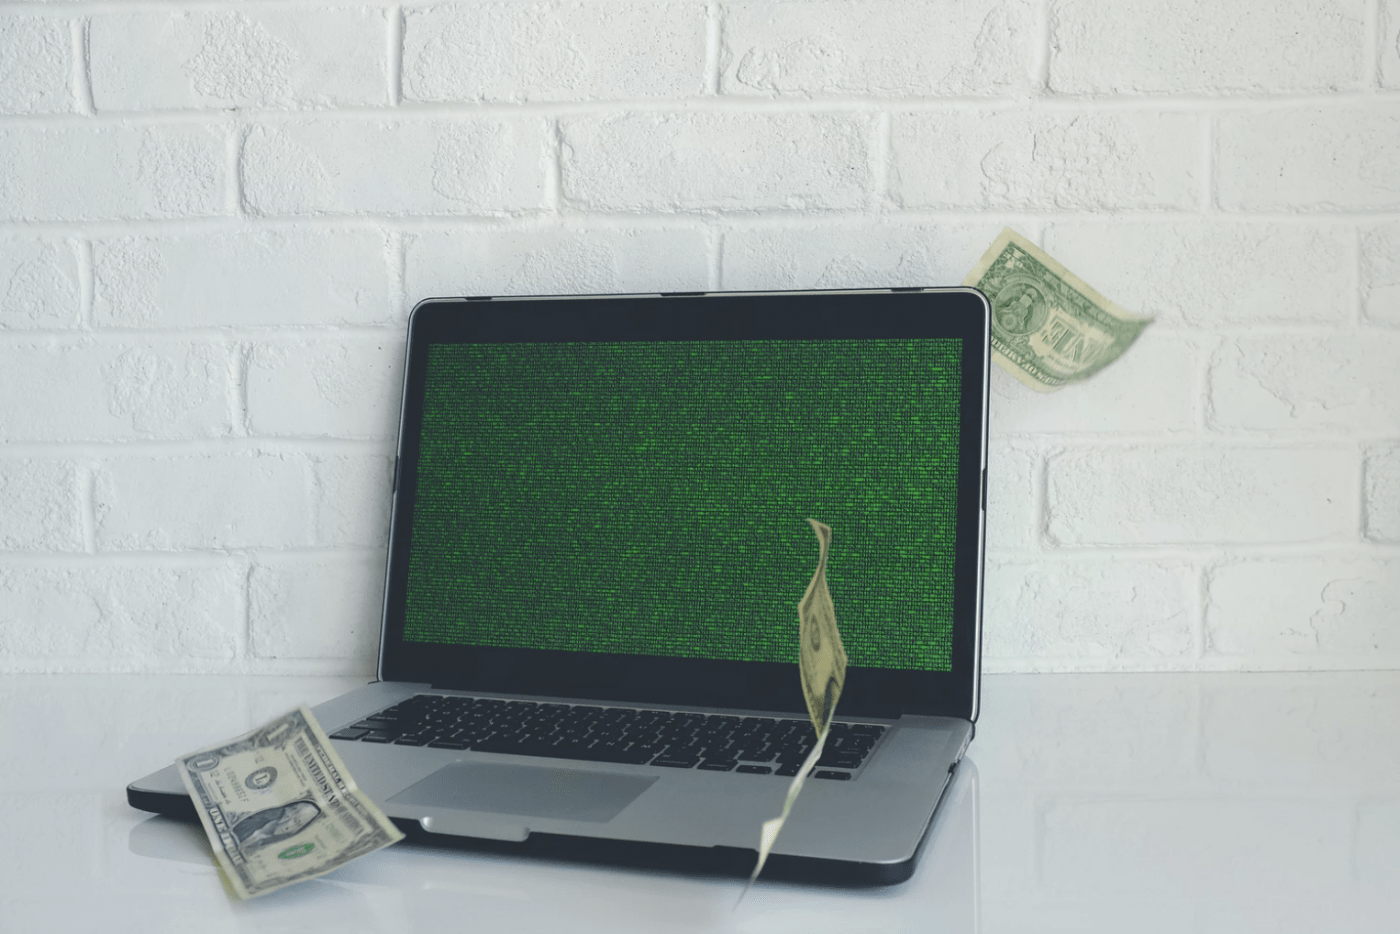 Laptop with floating dollar bills